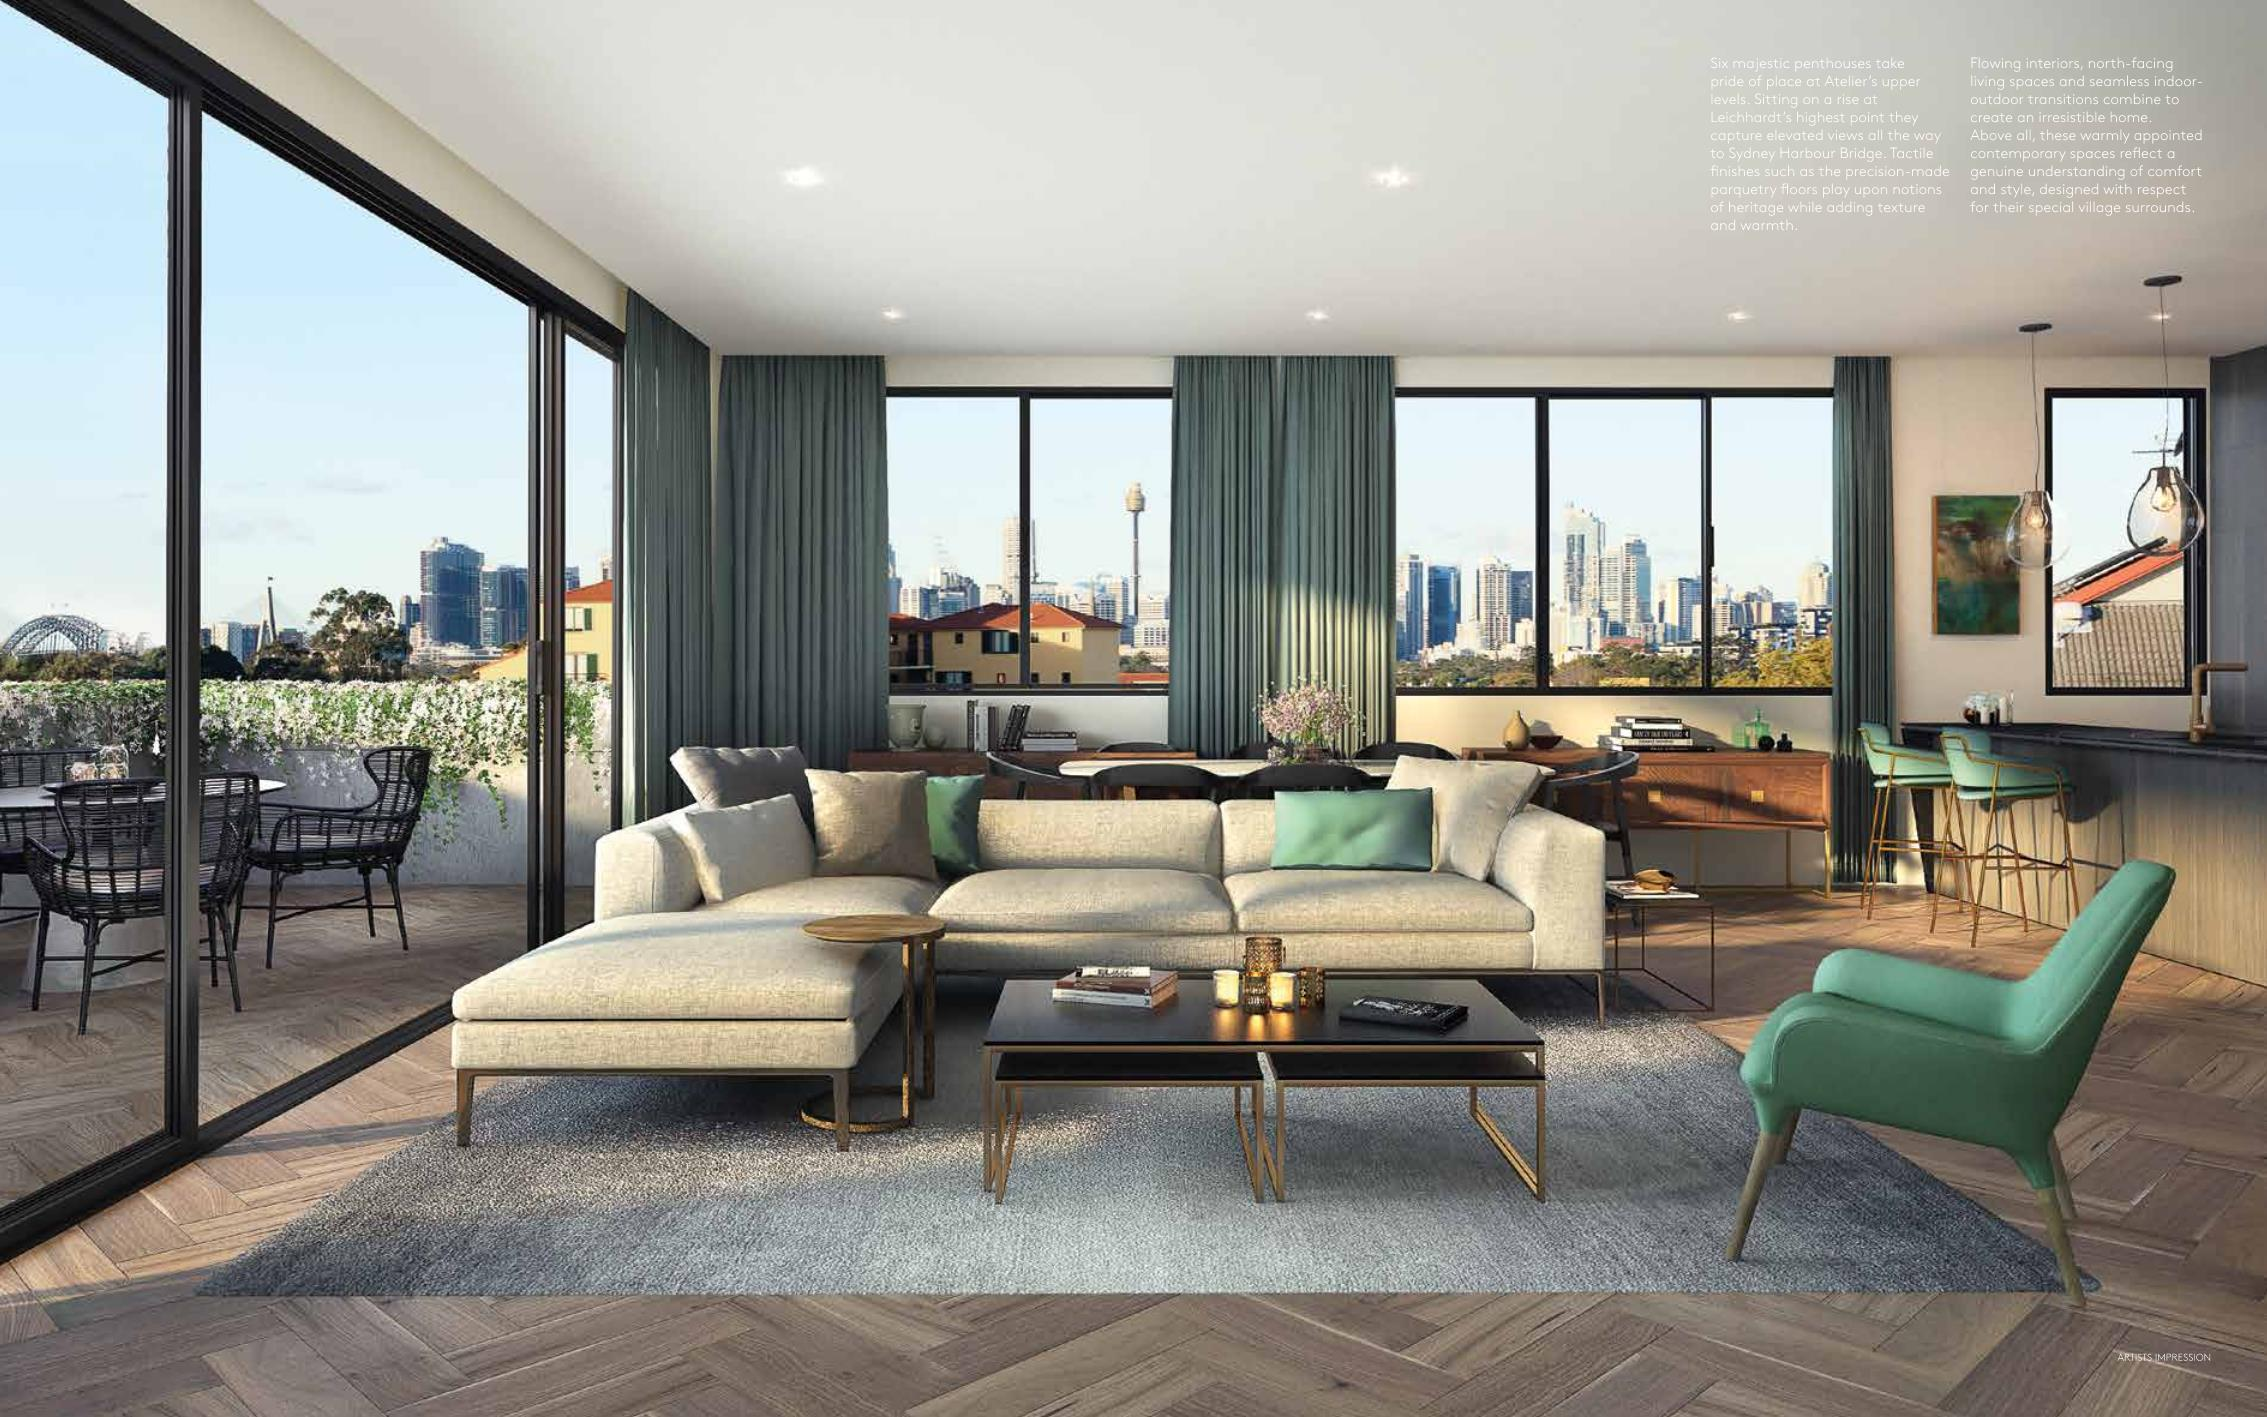 Penthouse Living Room_1.0.jpg